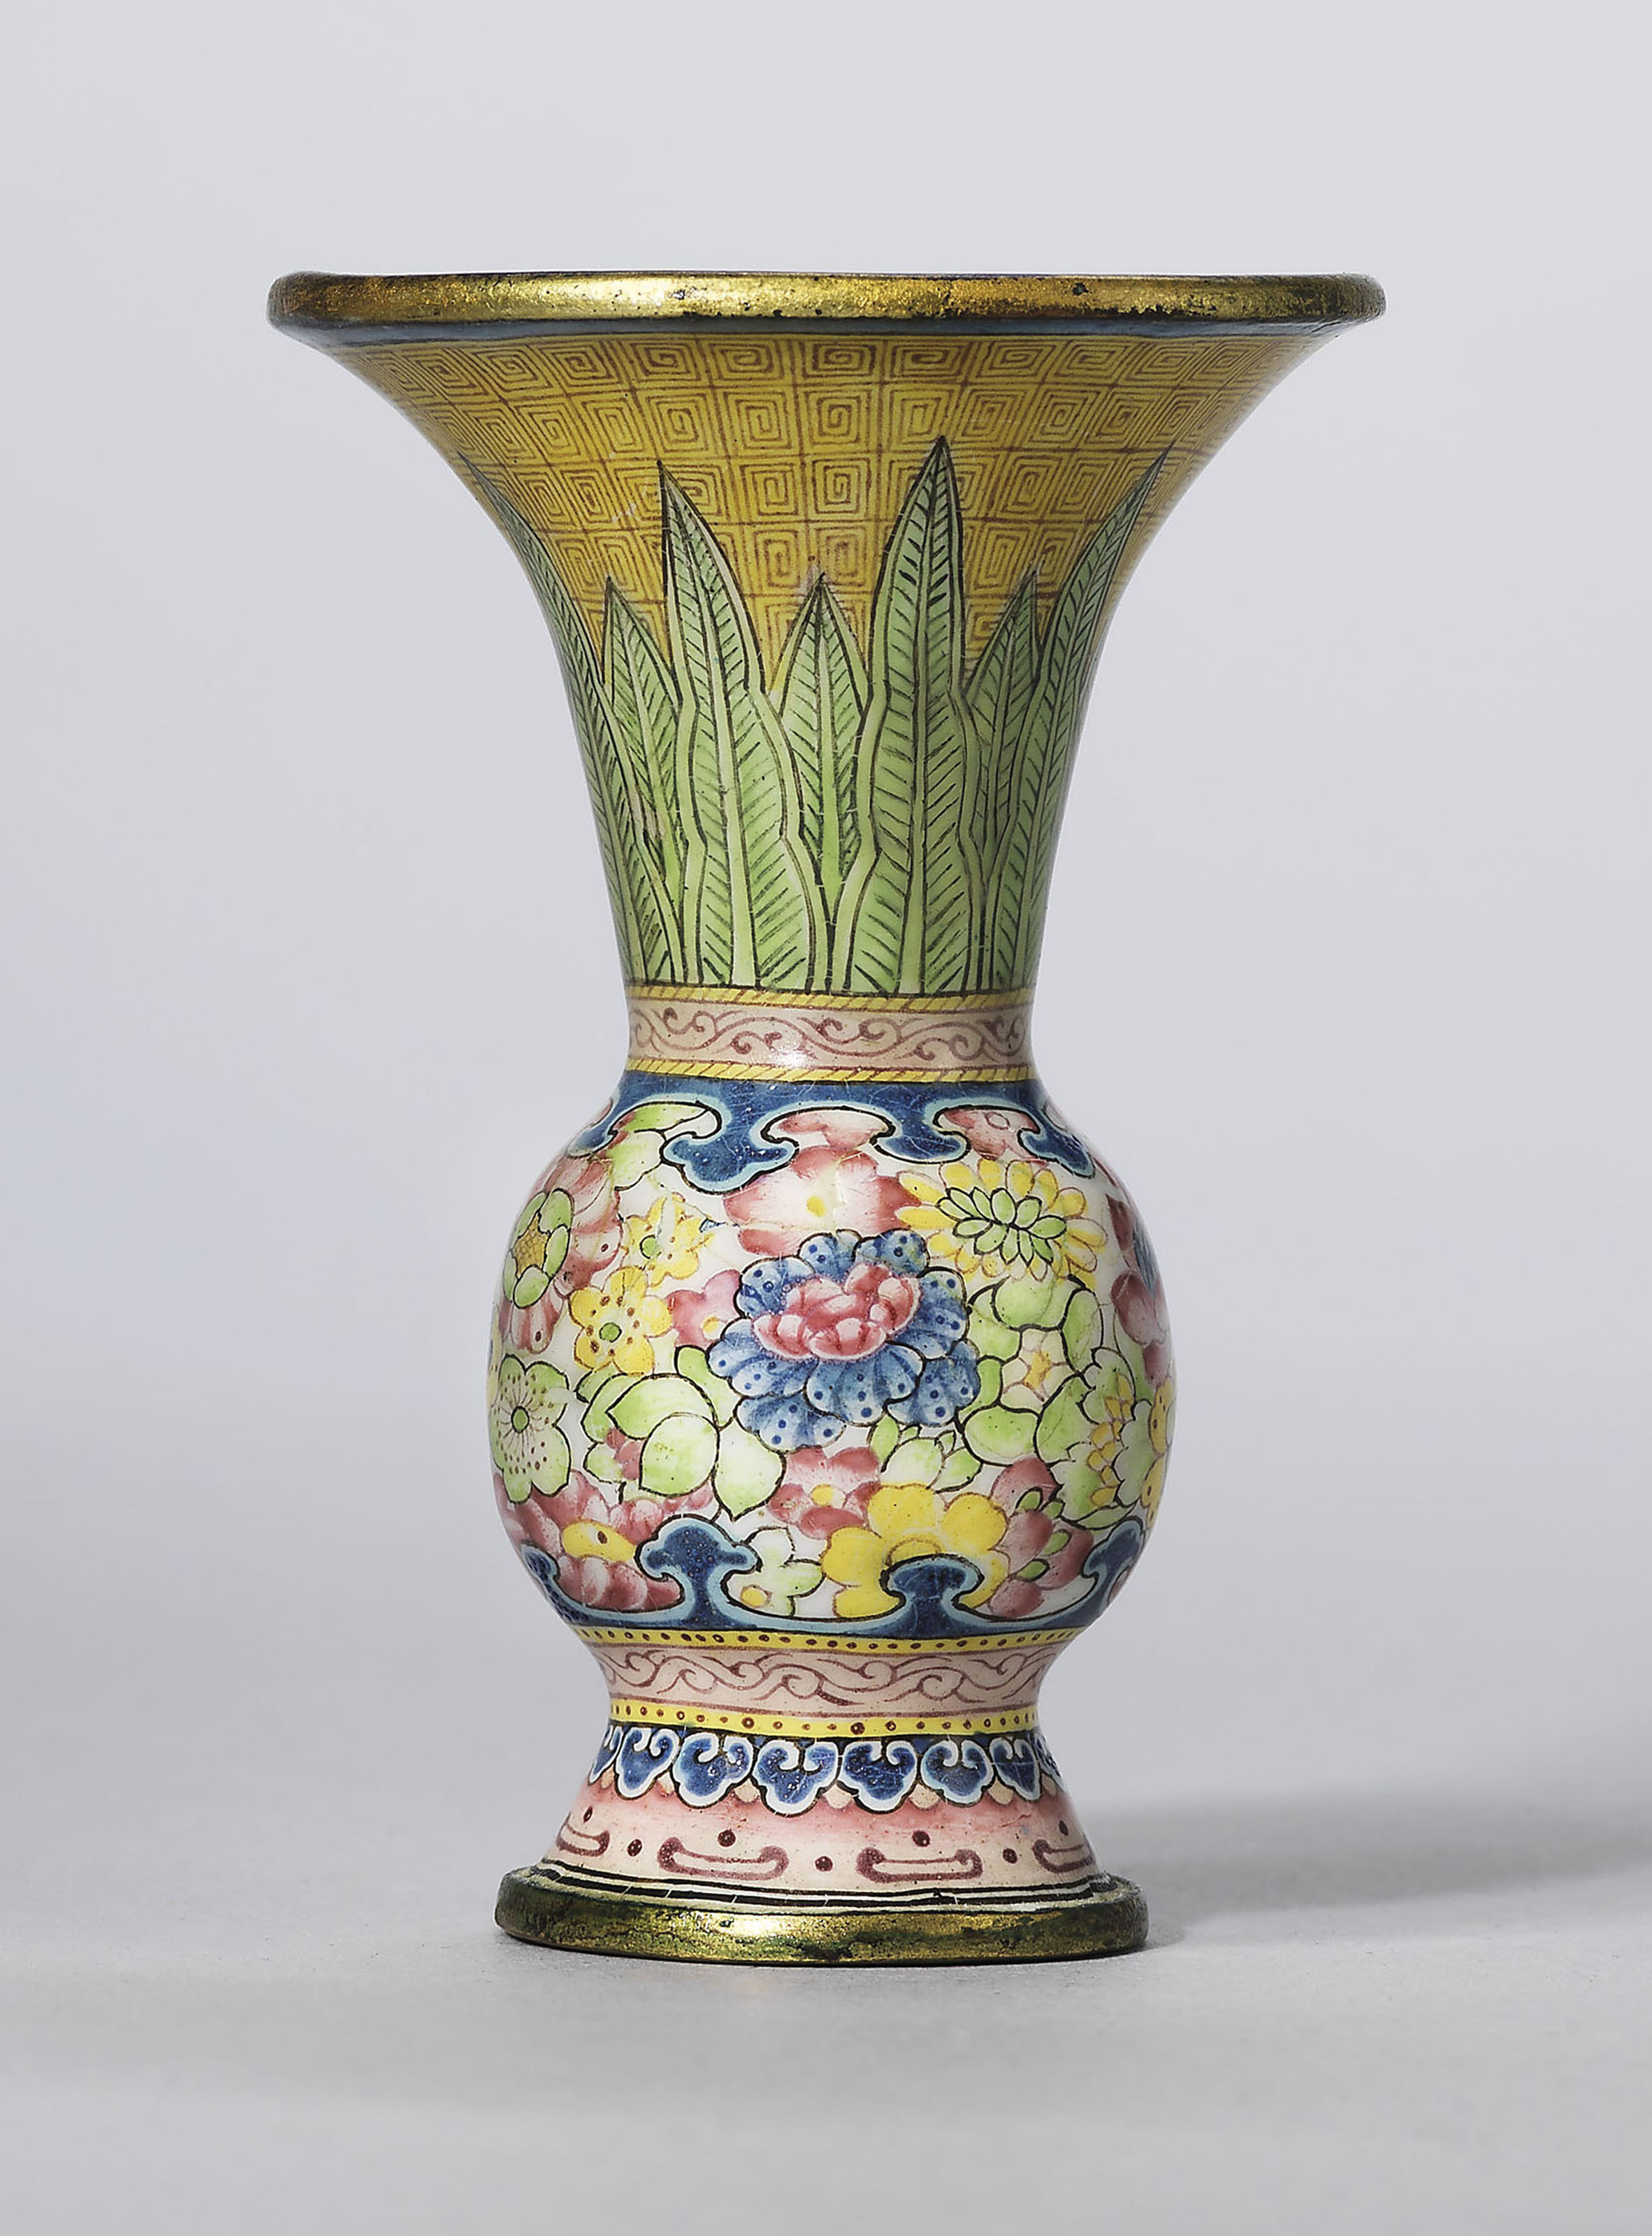 large japanese vase of chinese vase stand gallery xh vases vase stand chinese hong mu side with regard to chinese vase stand images a guide to the symbolism of flowers on chinese ceramics of chinese